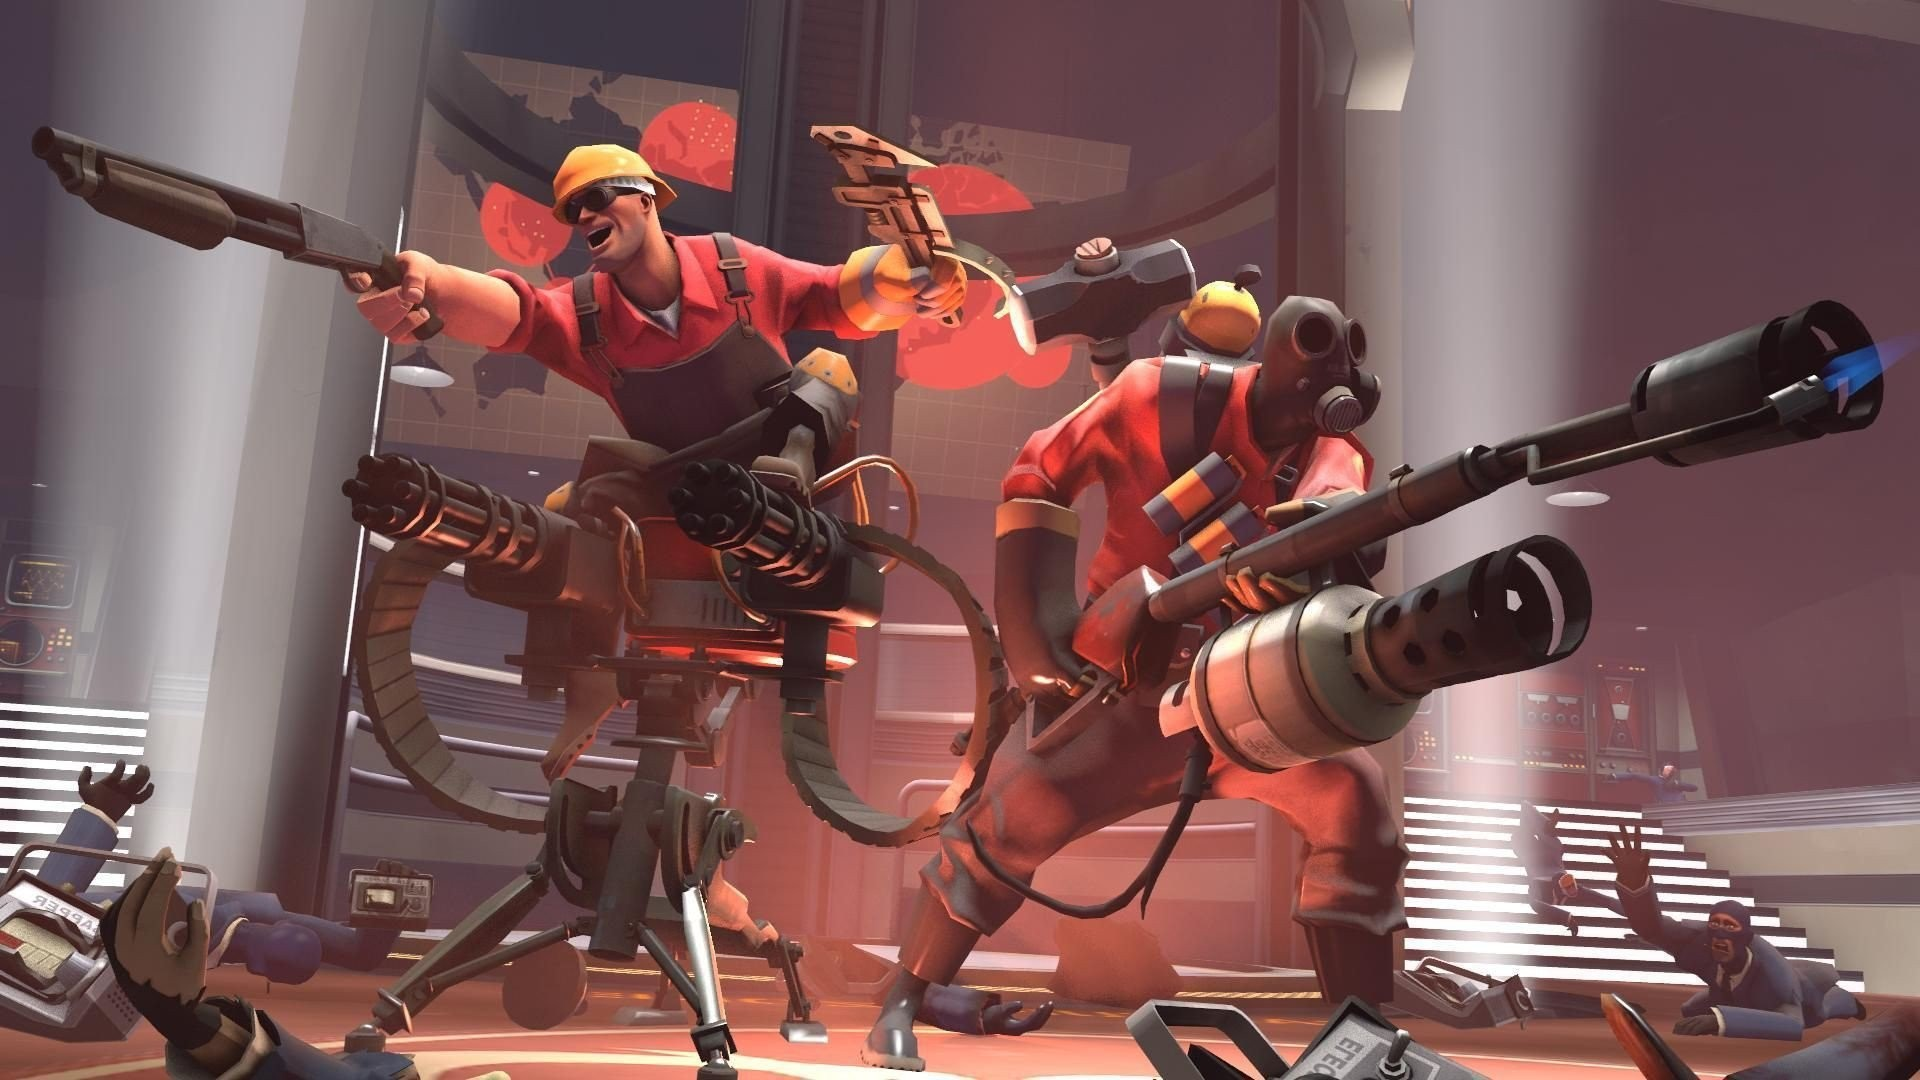 1920x1080 Video Games Artwork Team Fortress 2 Valve Corporation Pyro Engineer ...